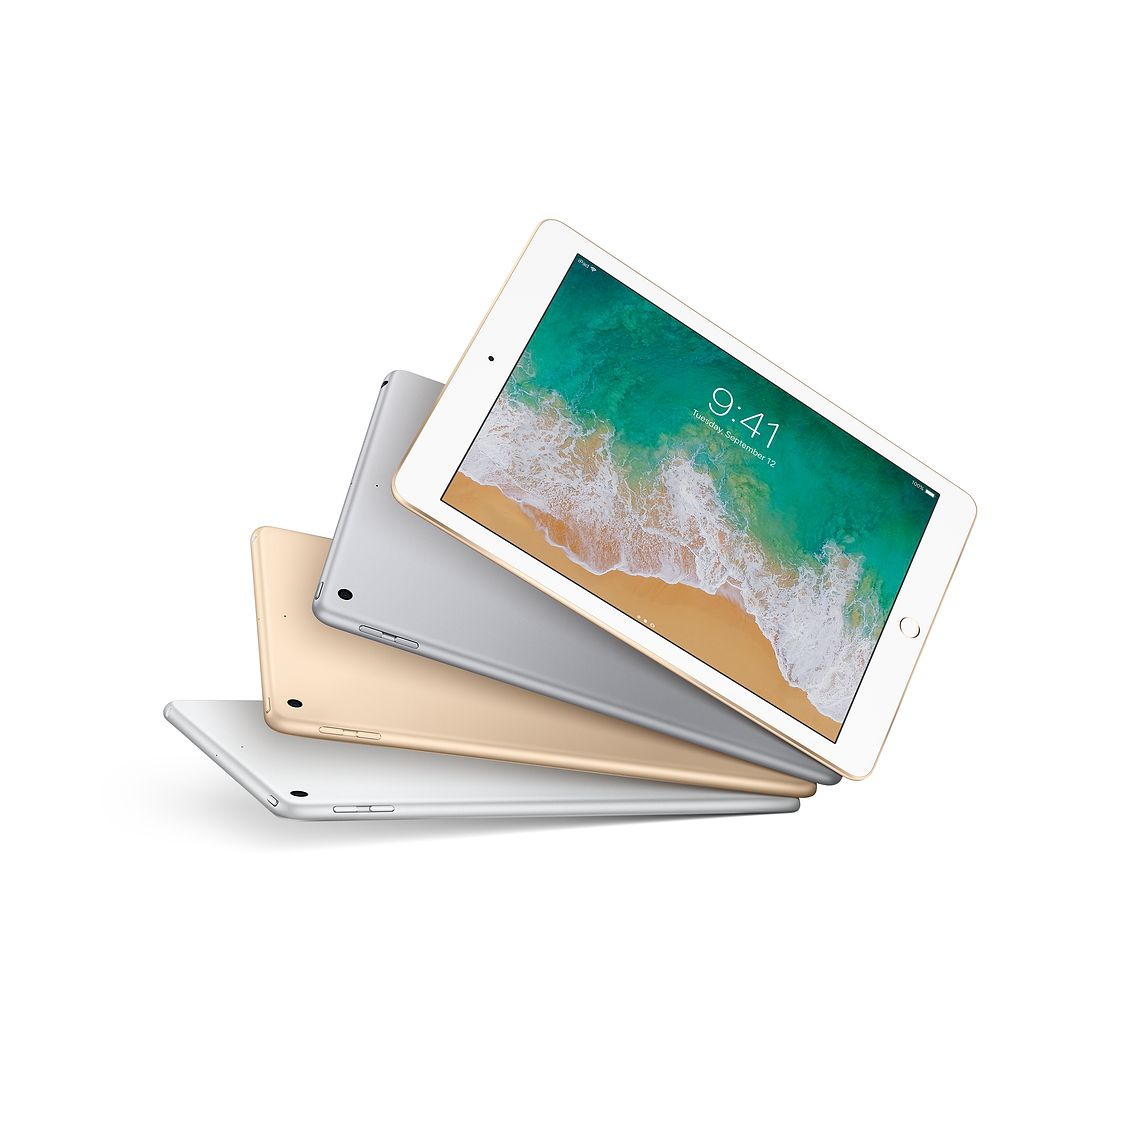 Apple Restocks Refurbished Clearance 2017 97 Ipads Starting At Iphone 5s 32 Gb 1 Years Waranty Only 239